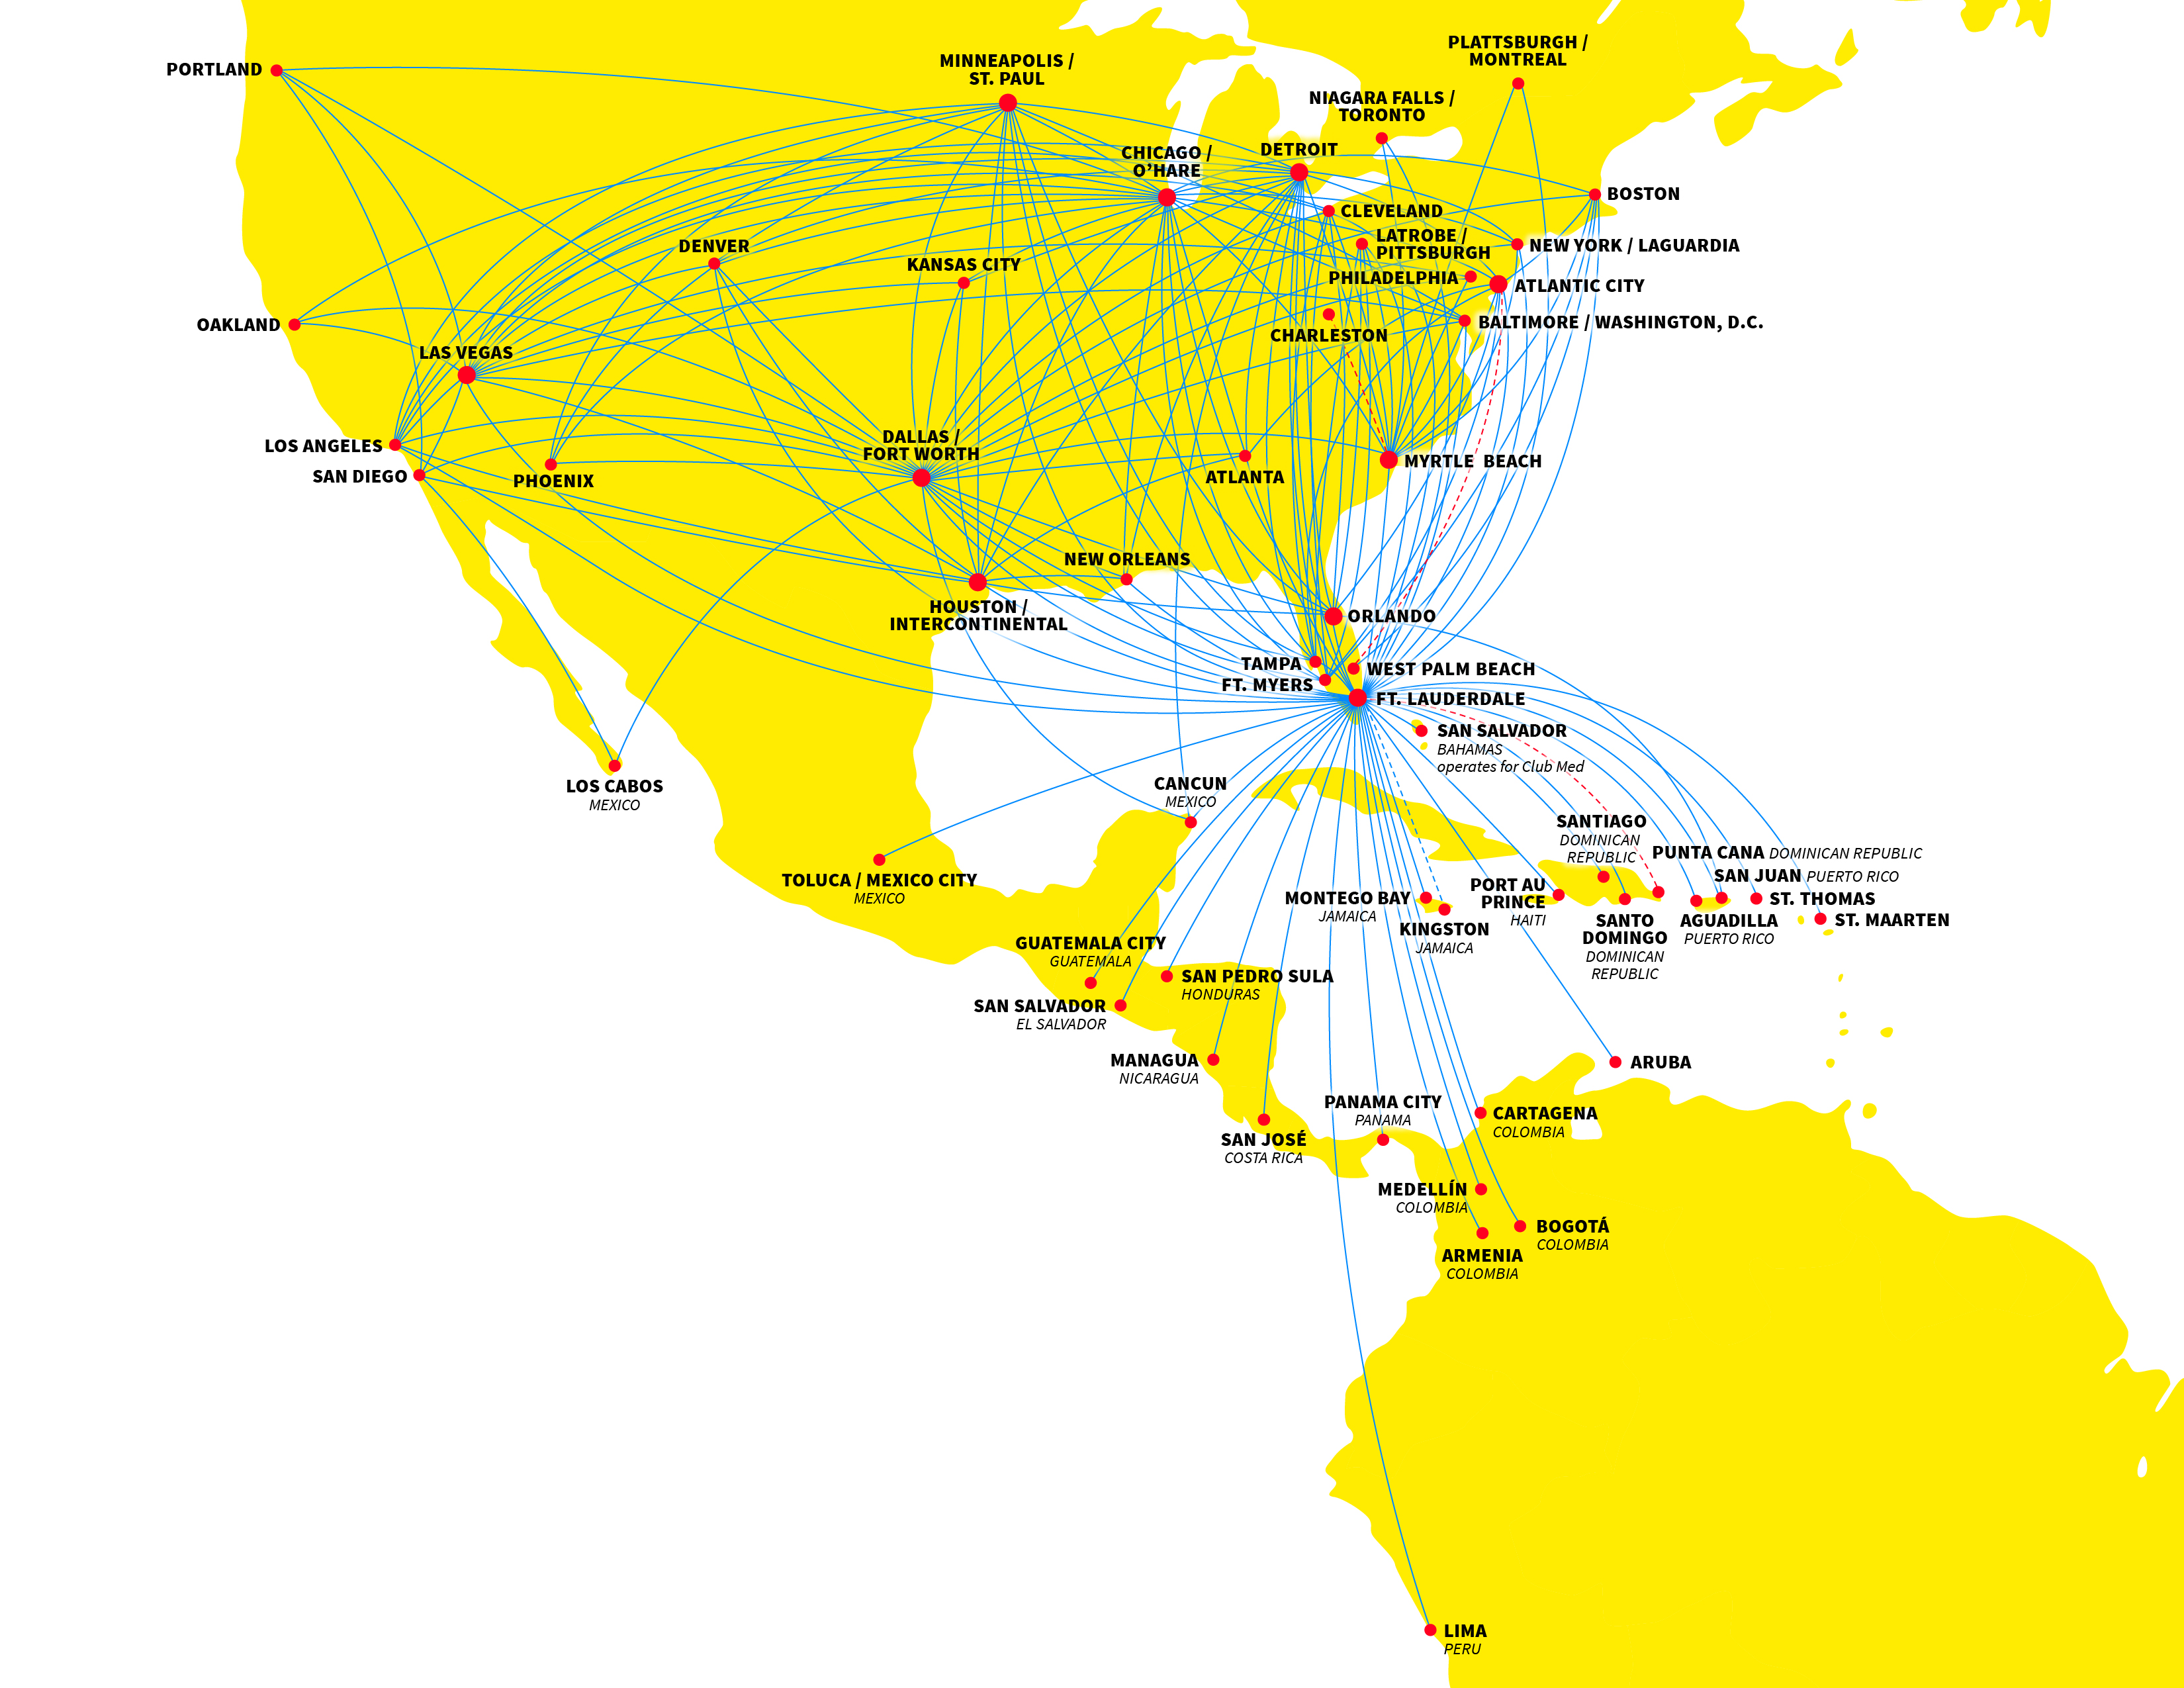 Charlotte World Airline News Philadelphia Airport Hotels Hotels - Us airways travel map